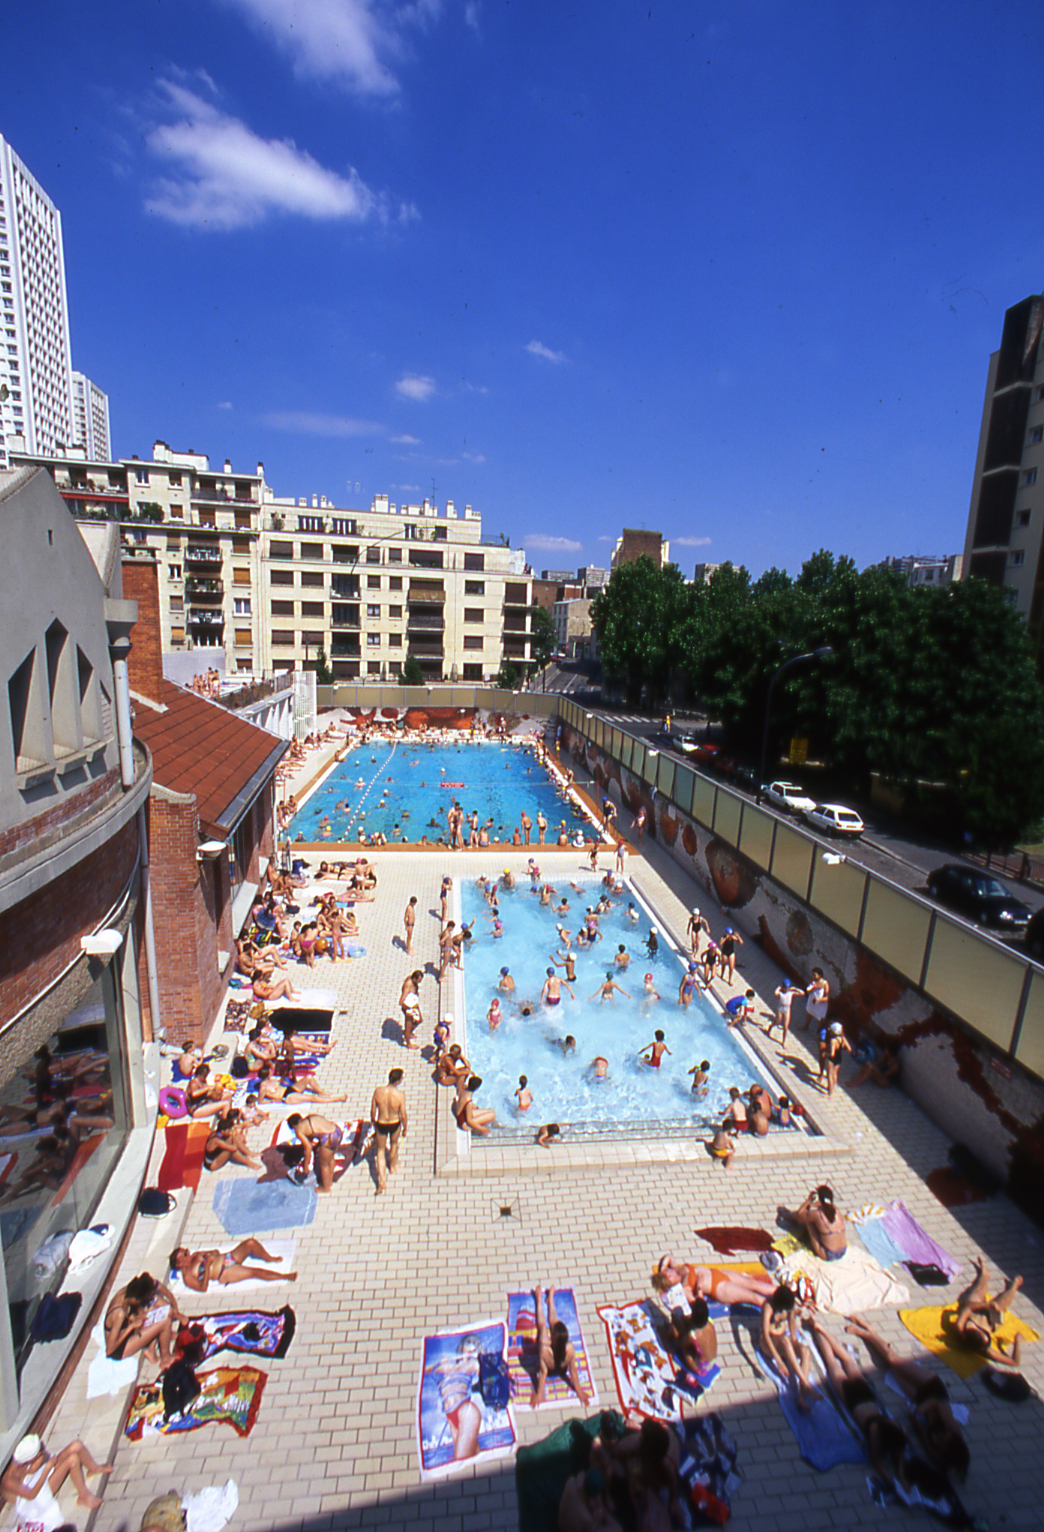 Piscine Butte-Aux-Cailles | Sport And Fitness In Butte-Aux ... tout Piscine Buttes Aux Cailles